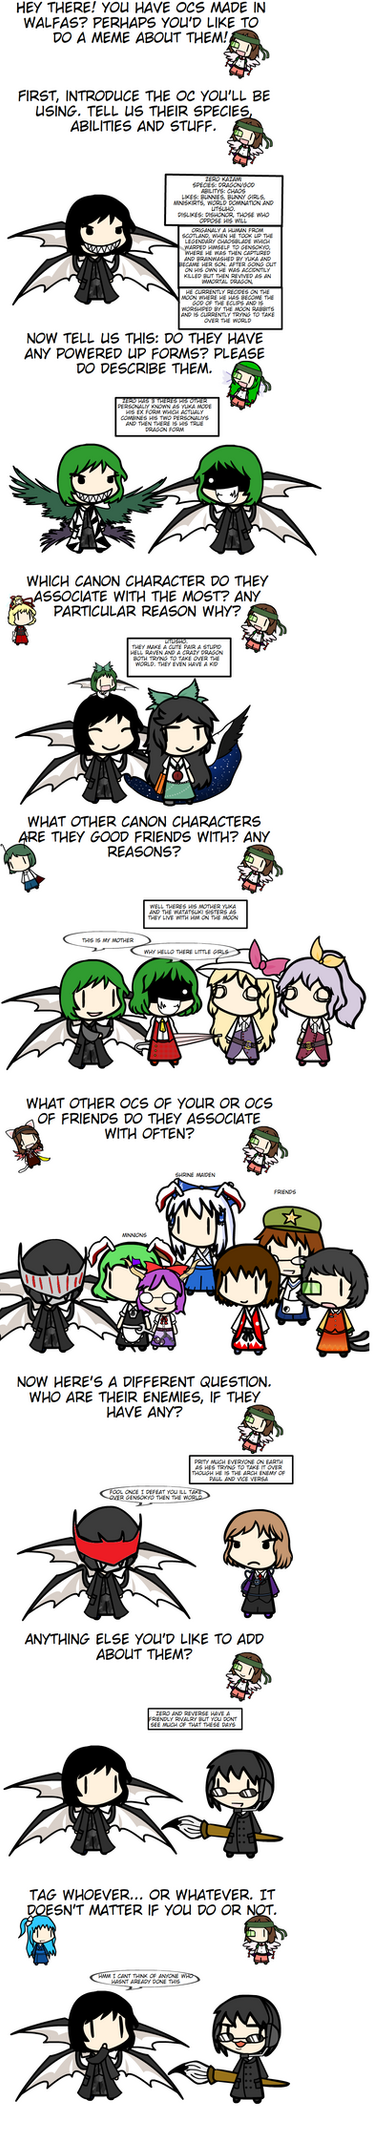 Chaosoverlordz oc walfas meme by chaosoverlordz on deviantart for Chaos overlords